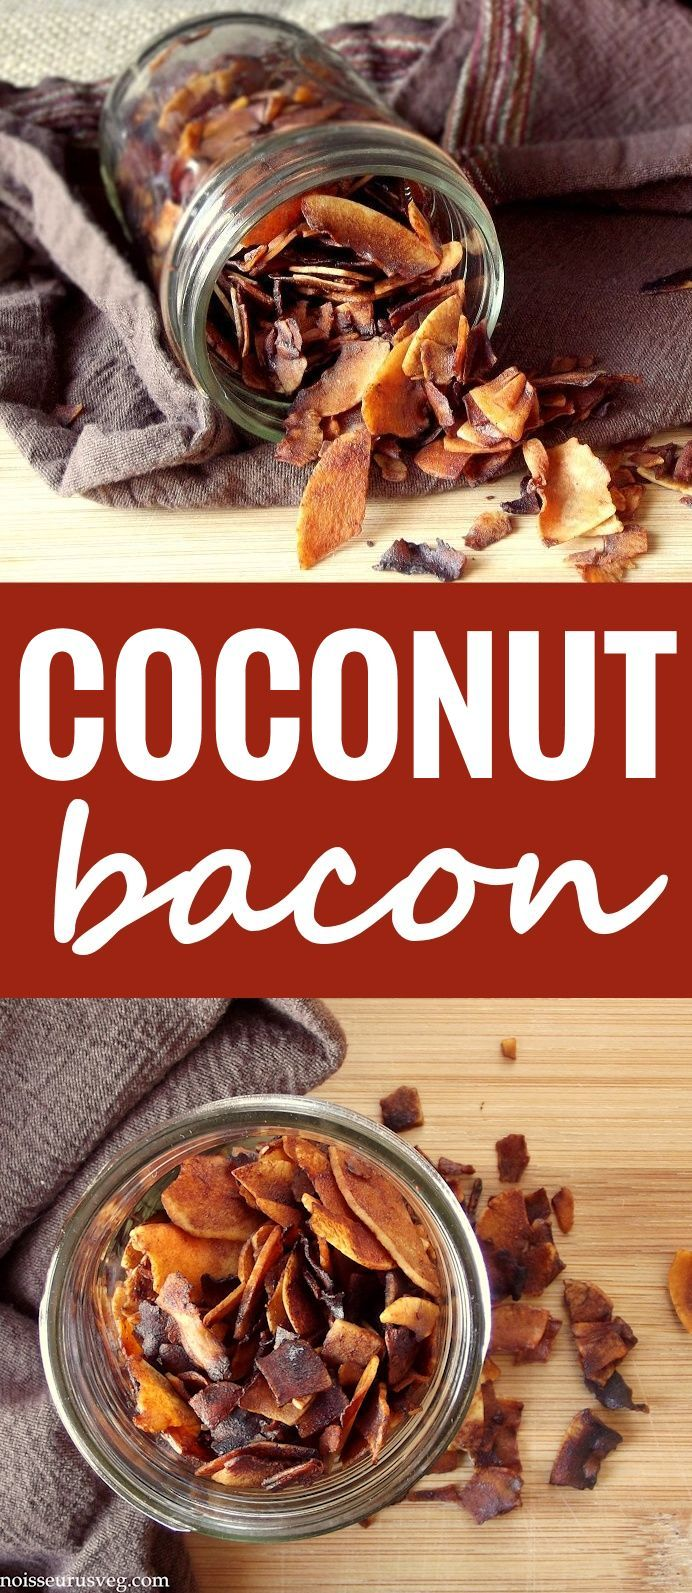 Coconut Bacon (for AIP sub coconut aminos for soy sauce and omit paprika).